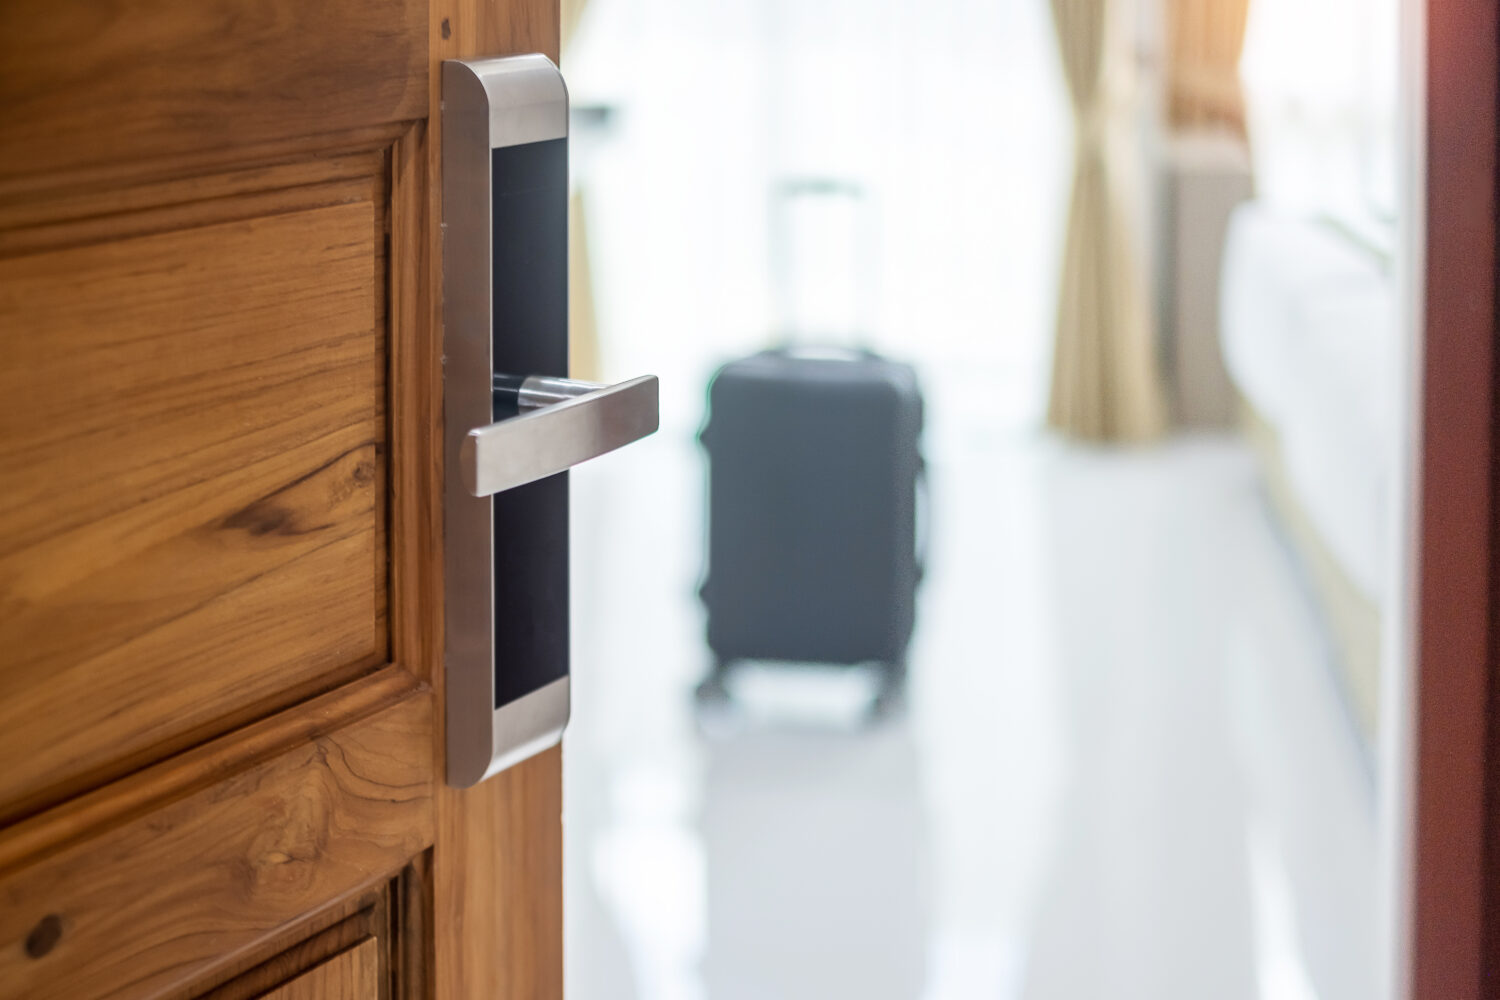 hotel door open to reveal a suitcase inside the room